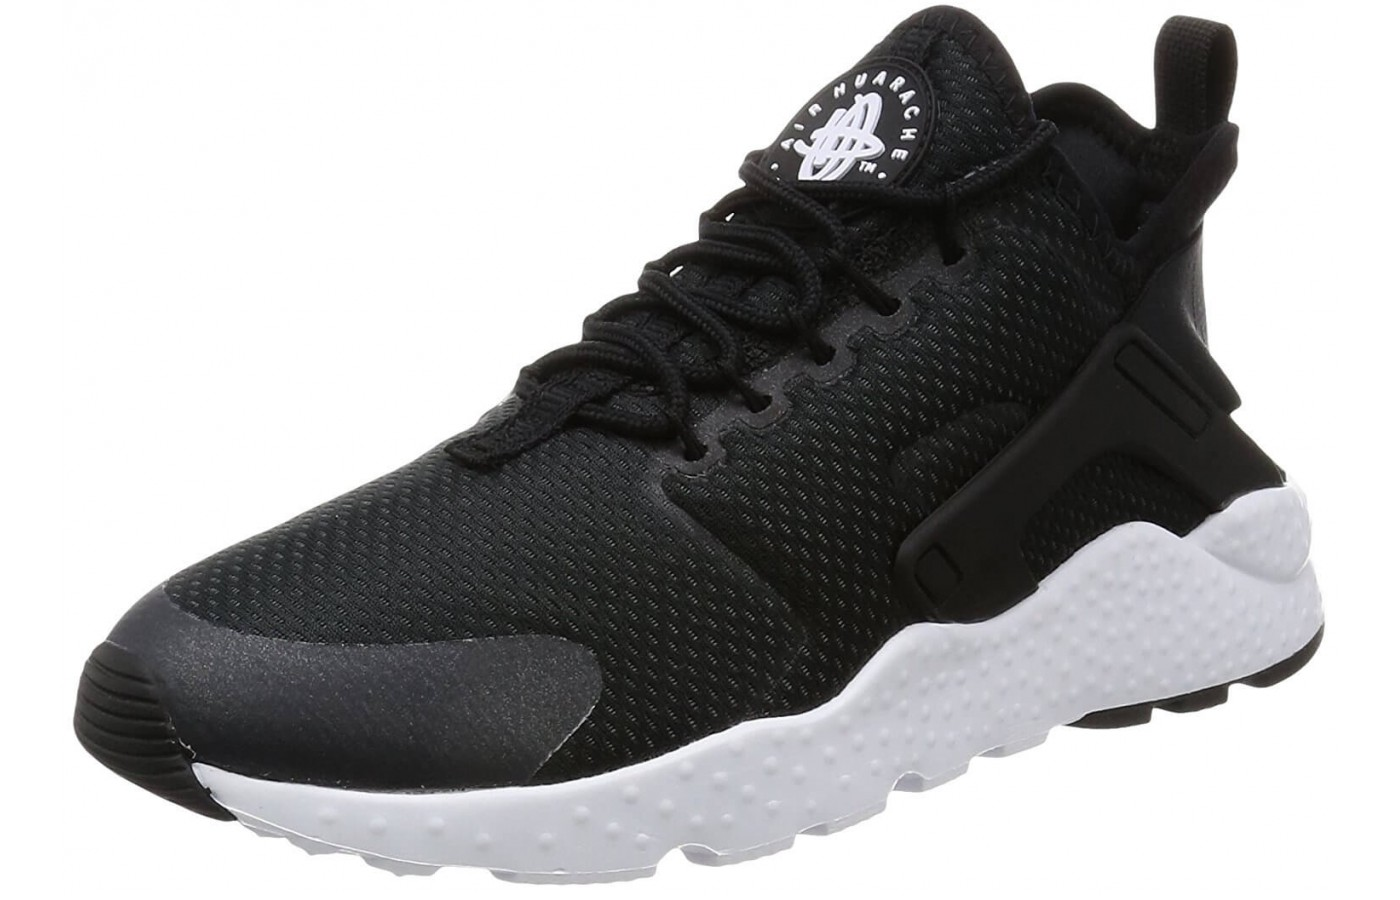 dc77eceb3823 Although the Nike Air Huarache Ultra has a slight heel drop